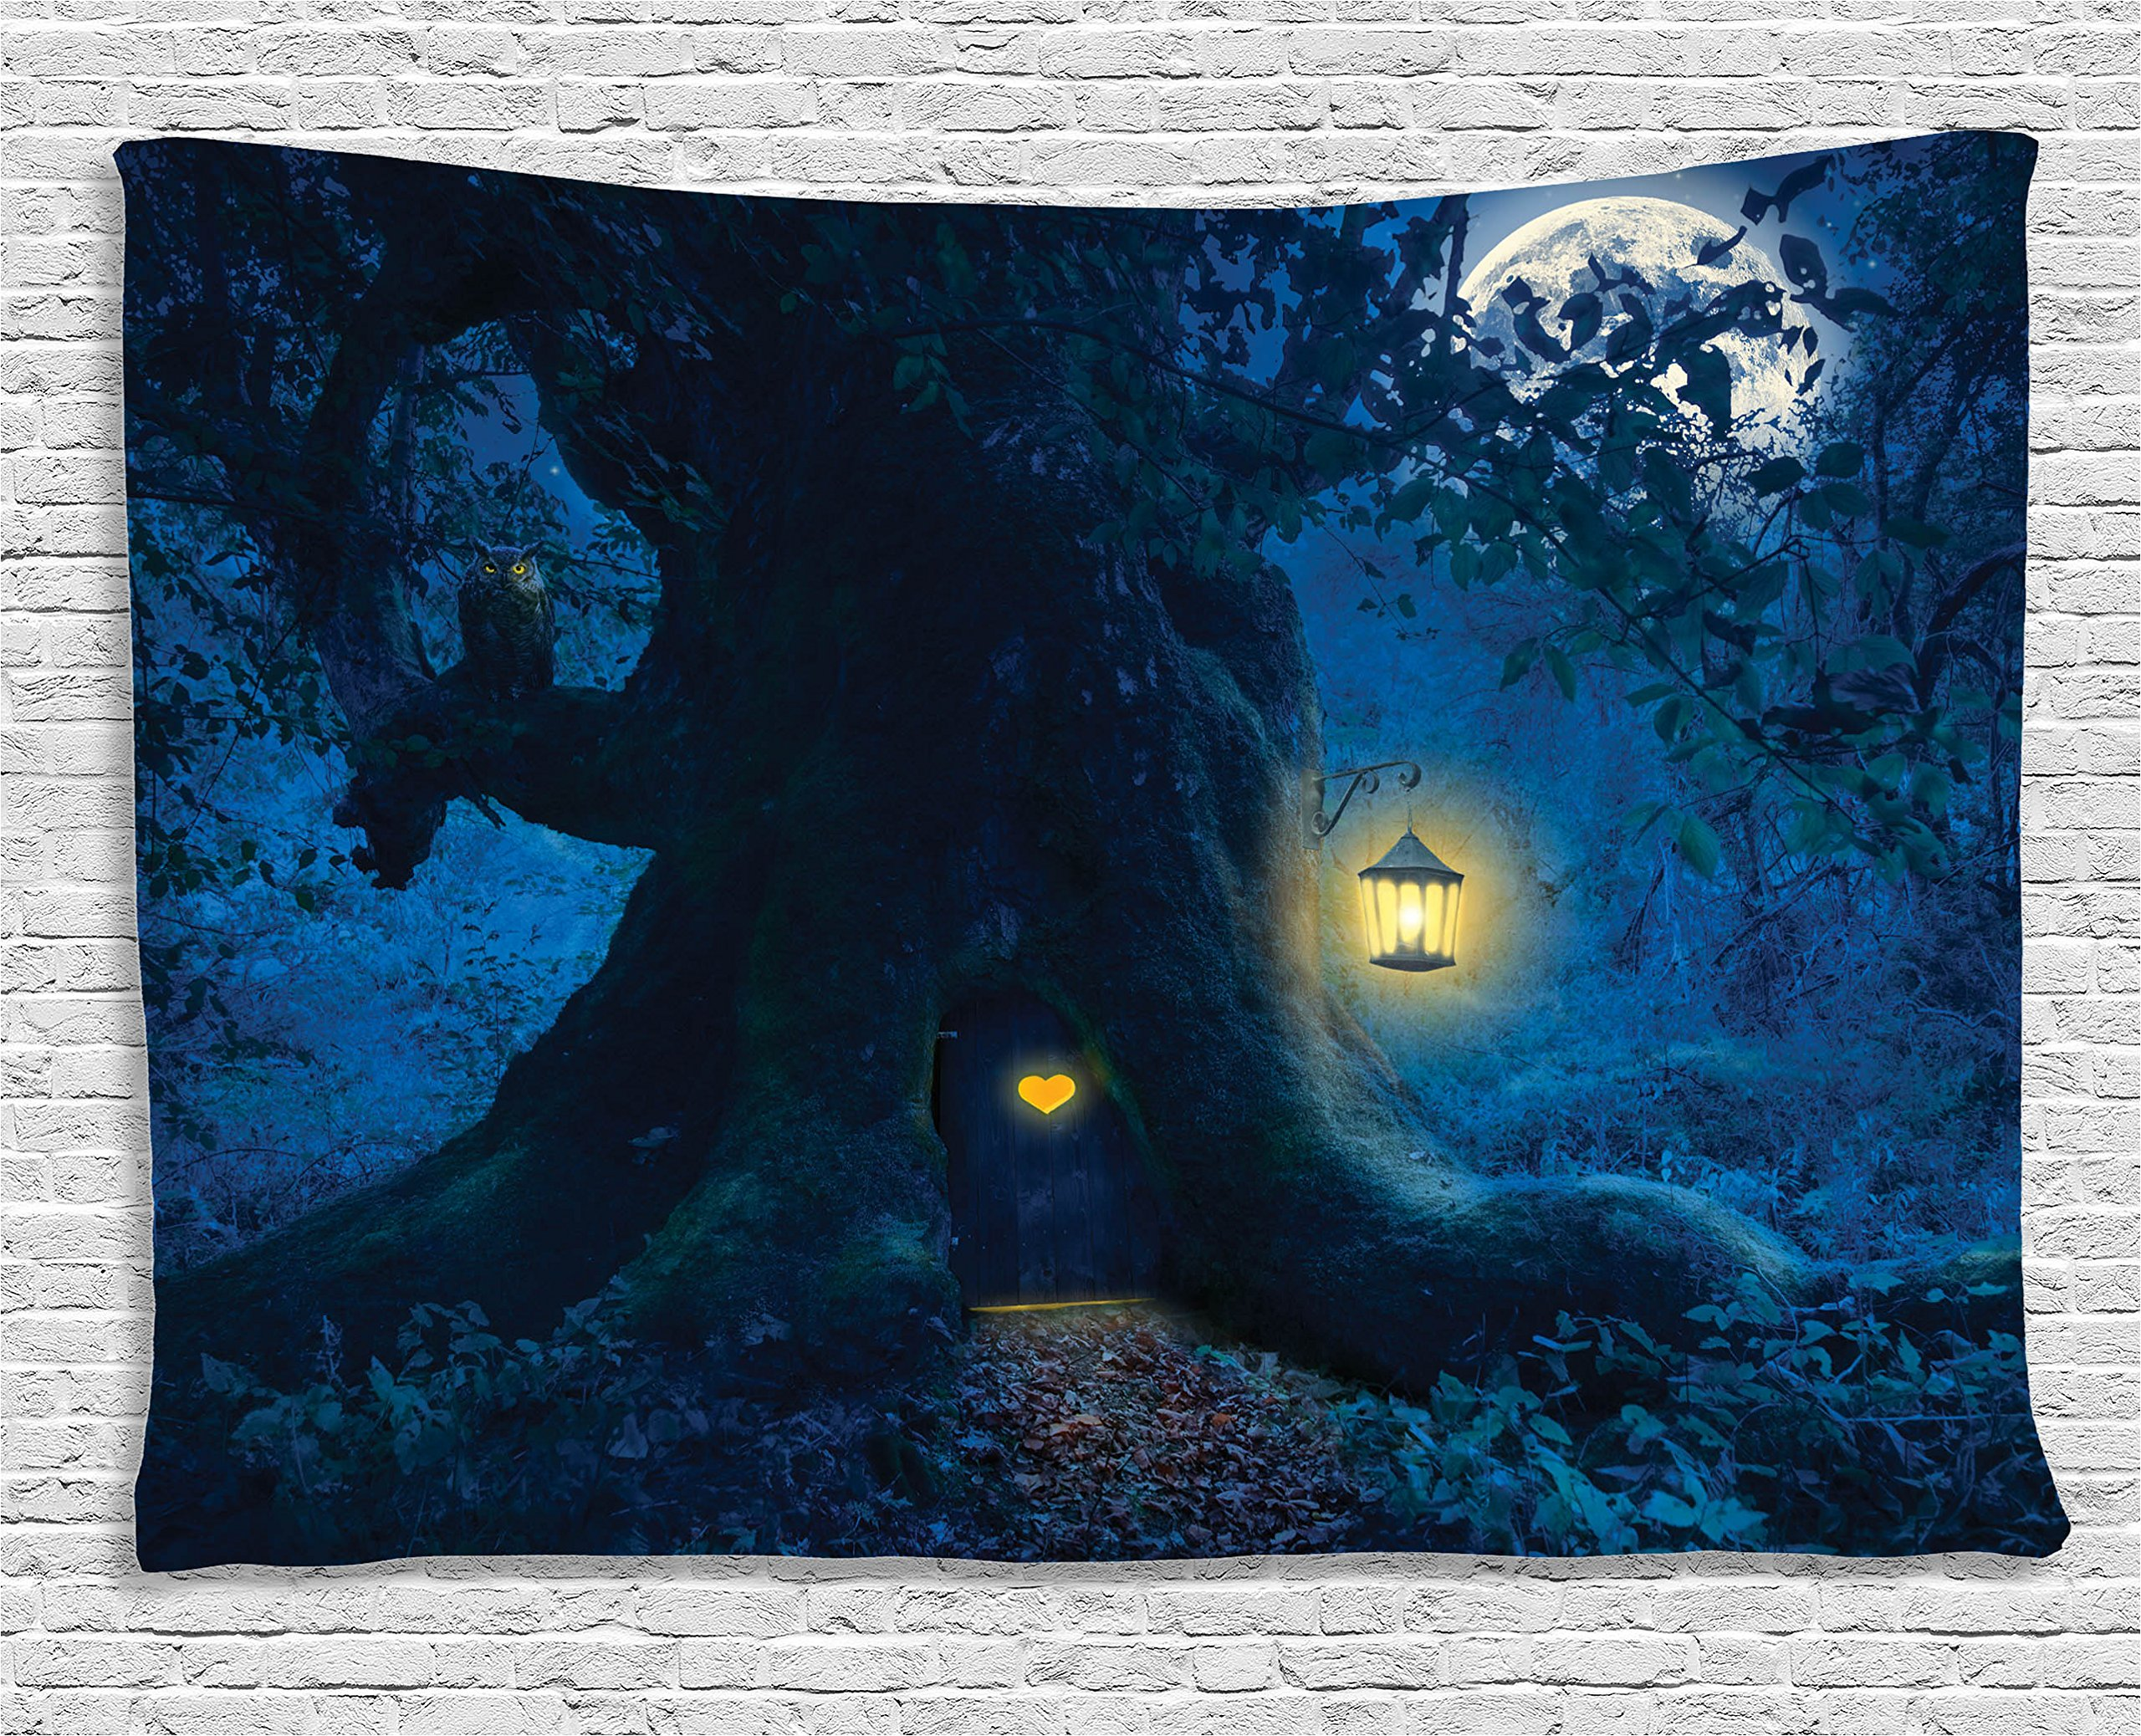 Ambesonne Fantasy House Decor Tapestry, Magical Night with A Little Home in The Trunk of an Ancient Tree in The Woods, Wall Hanging for Bedroom Living Room Dorm, 60 W X 40 L, Navy and Seal Brown